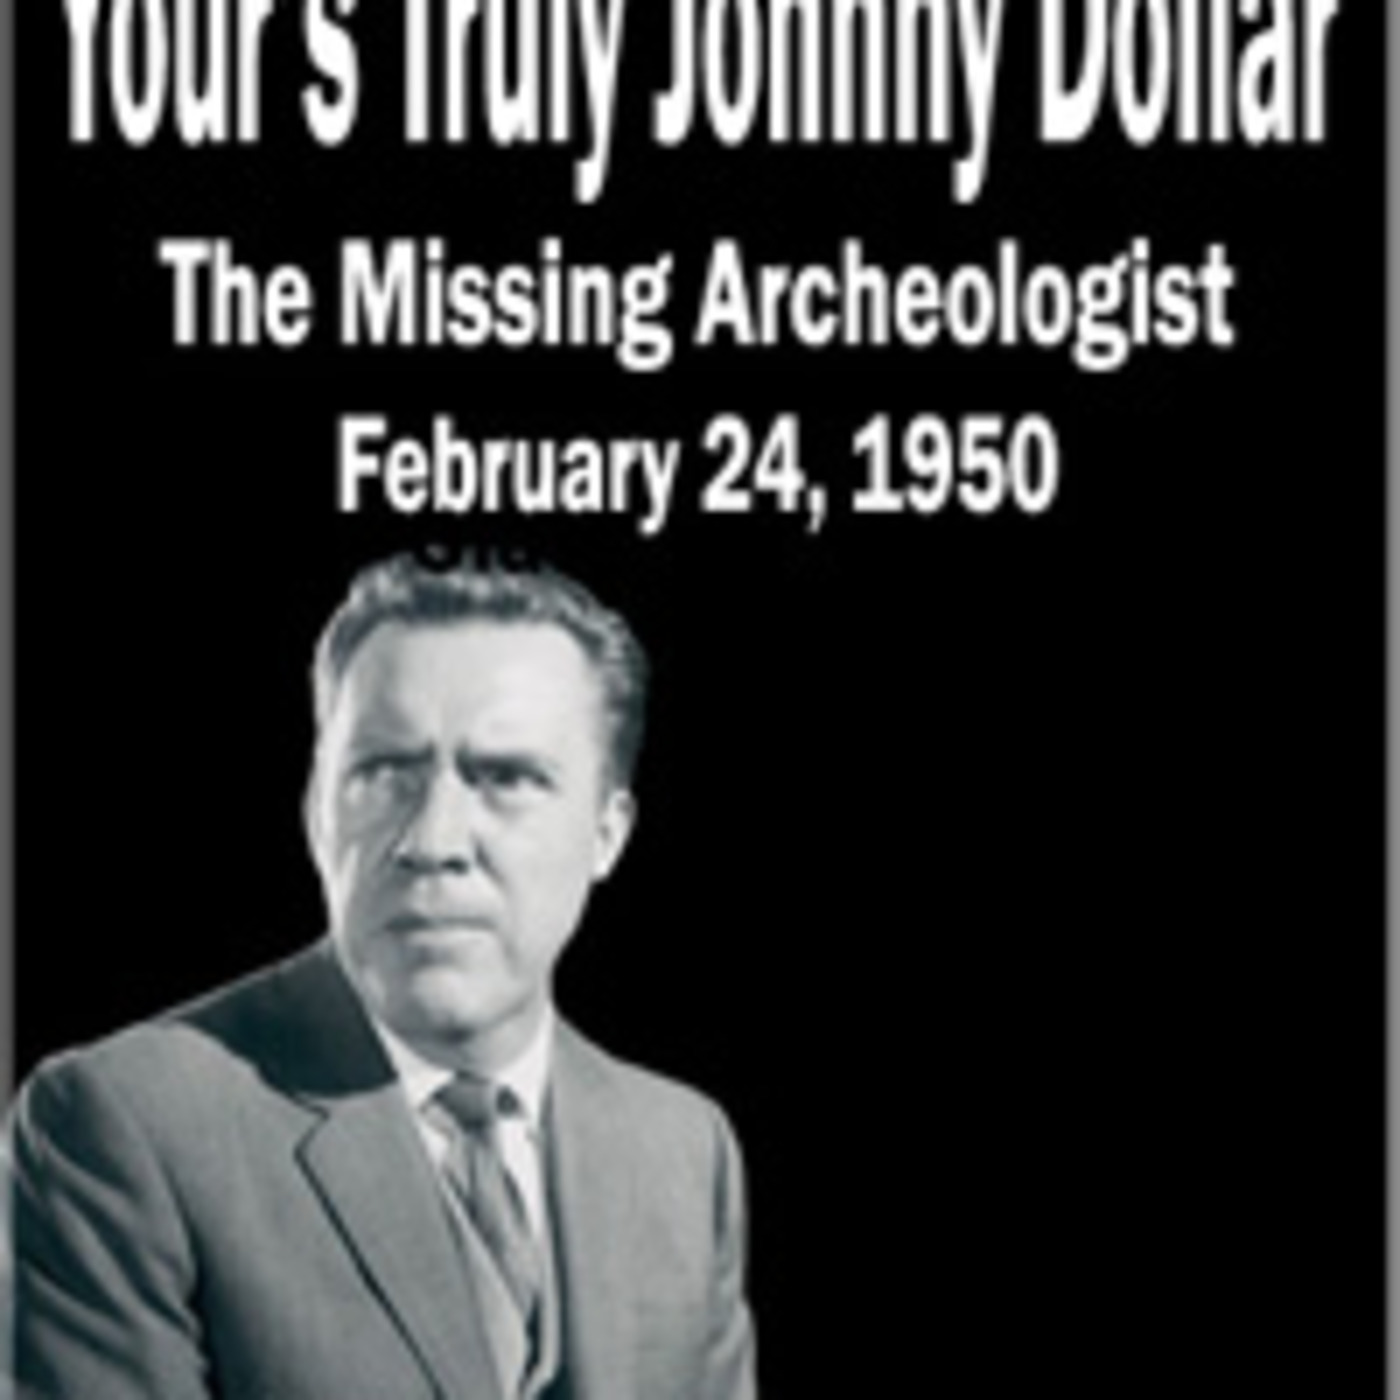 Your\'s Truly Johnny Dollar - The Missing Archeologist (02-24-50) MP3